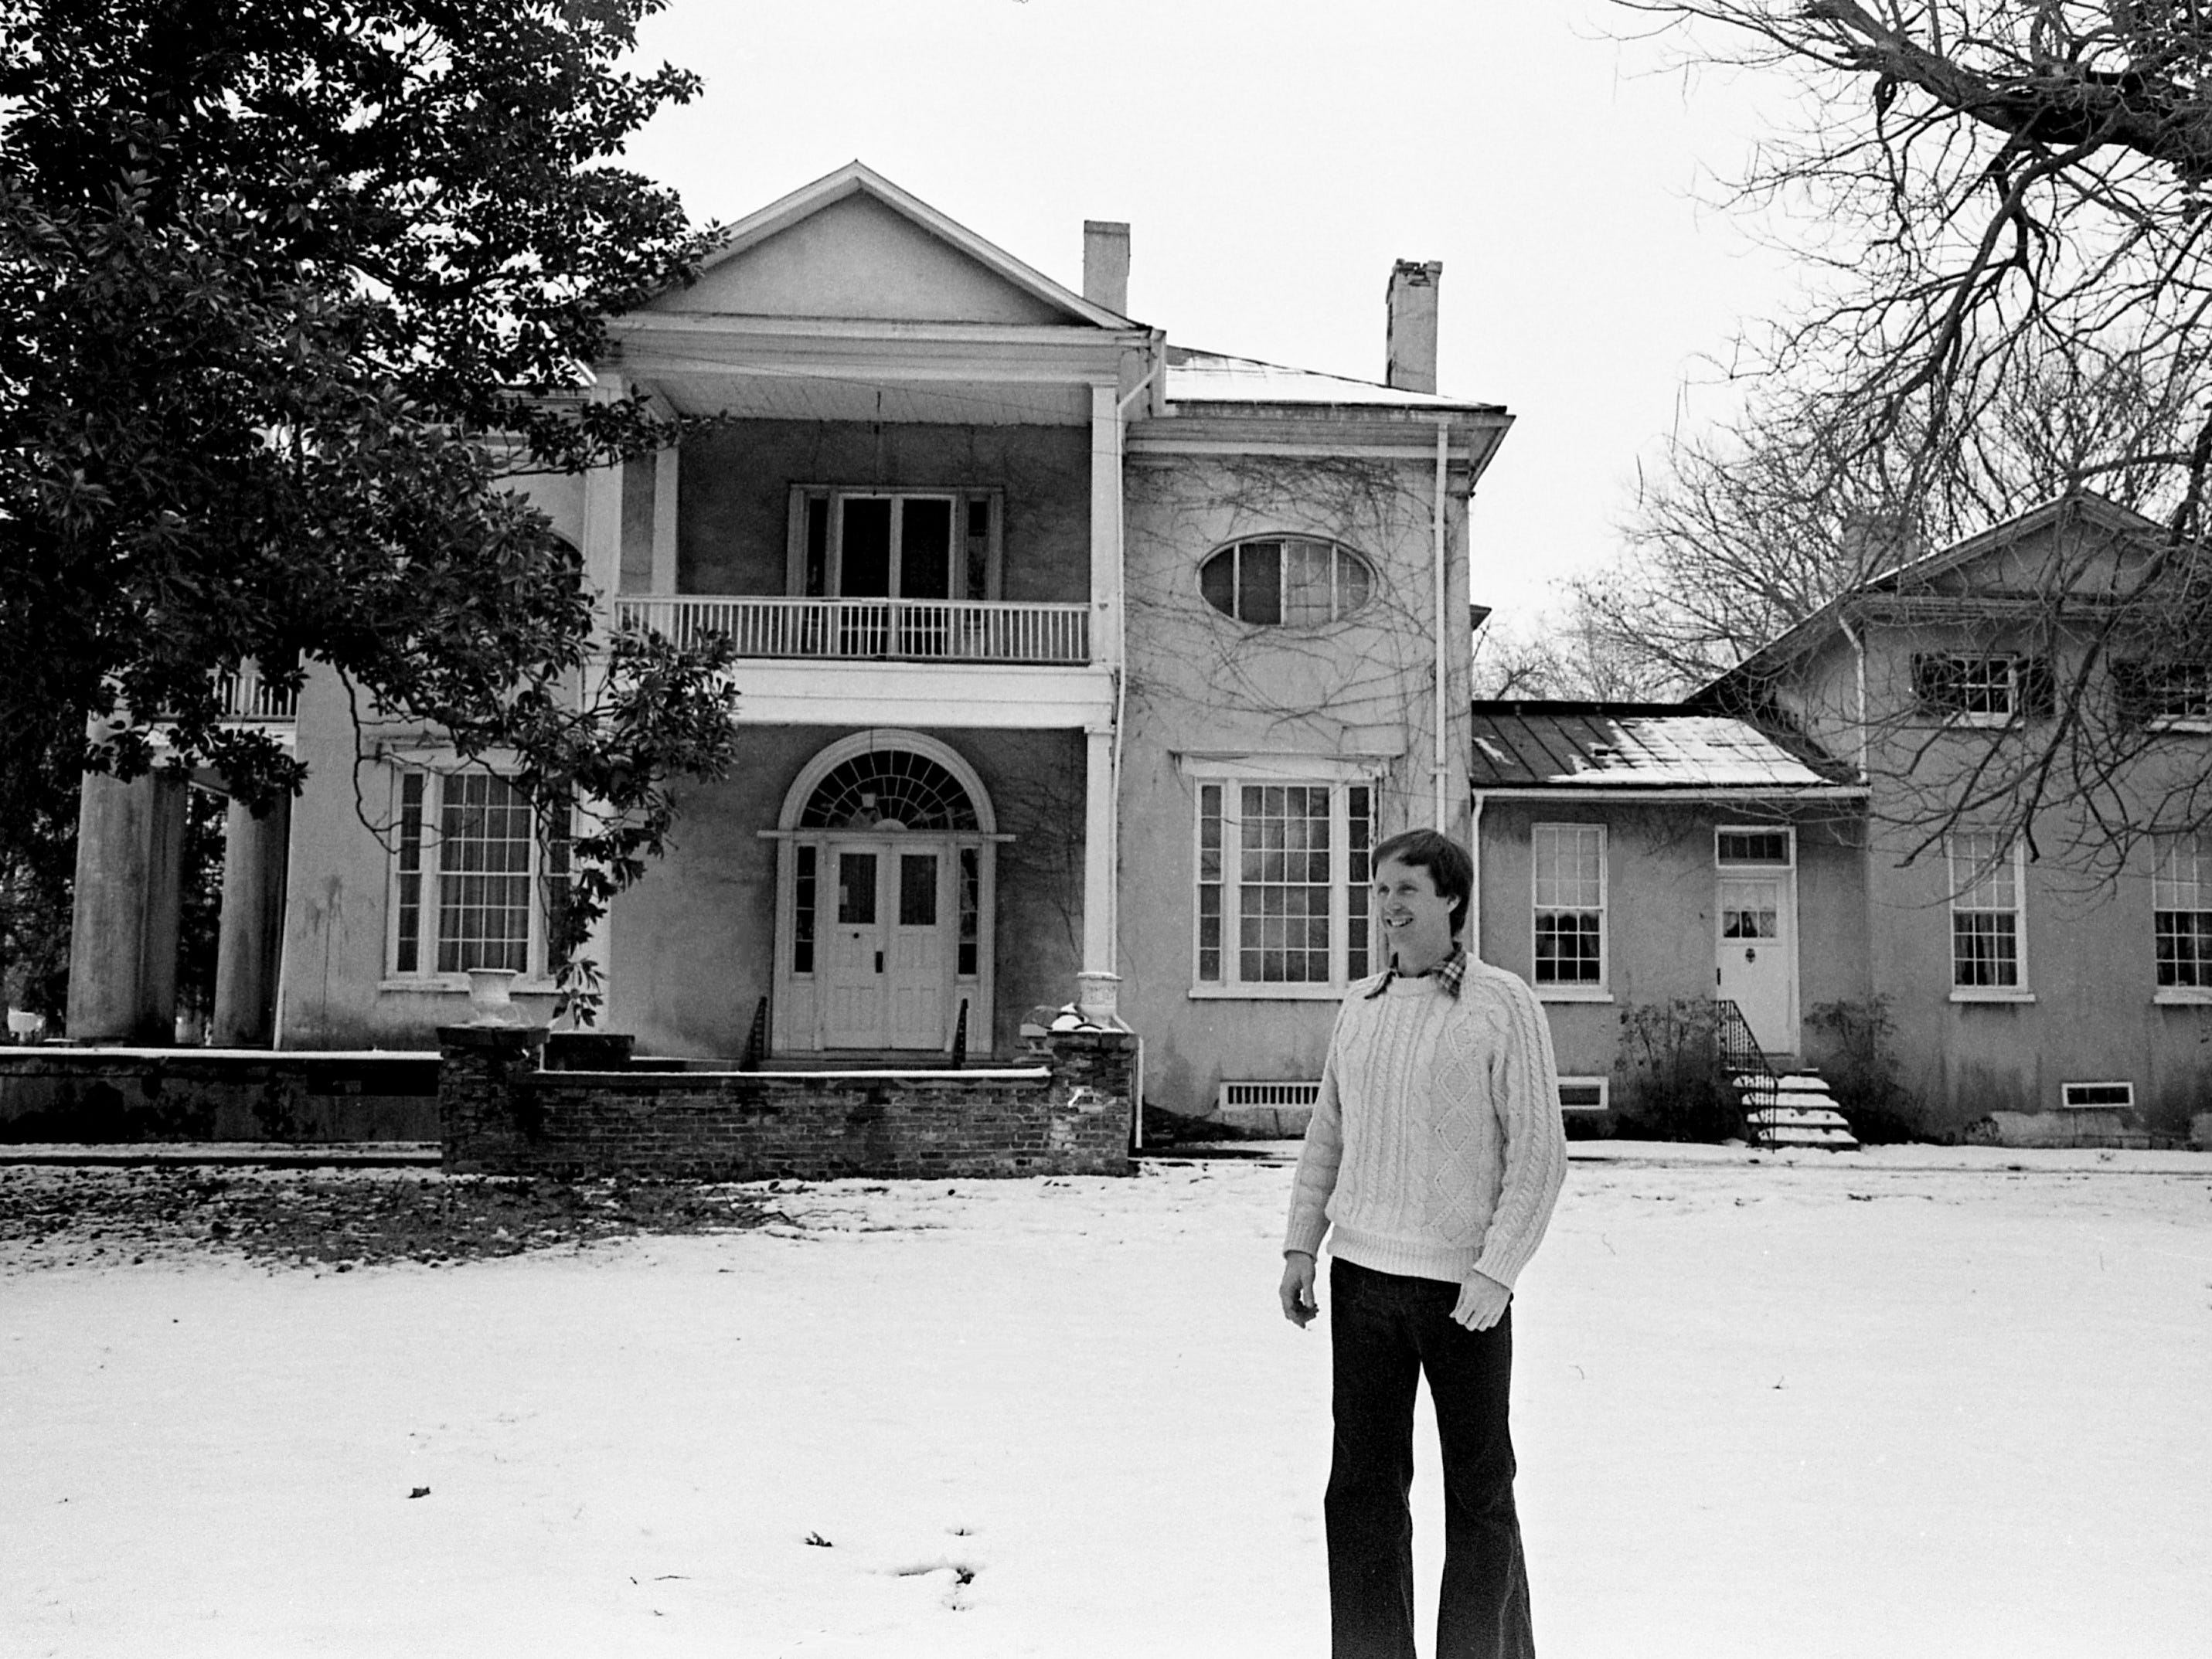 Paul Clements, who is writing on the history of the Woodmont area, stands Feb. 20, 1979, in front of the original entrance of the Woodlawn, which was built by Capt. John Nichols in 1812.